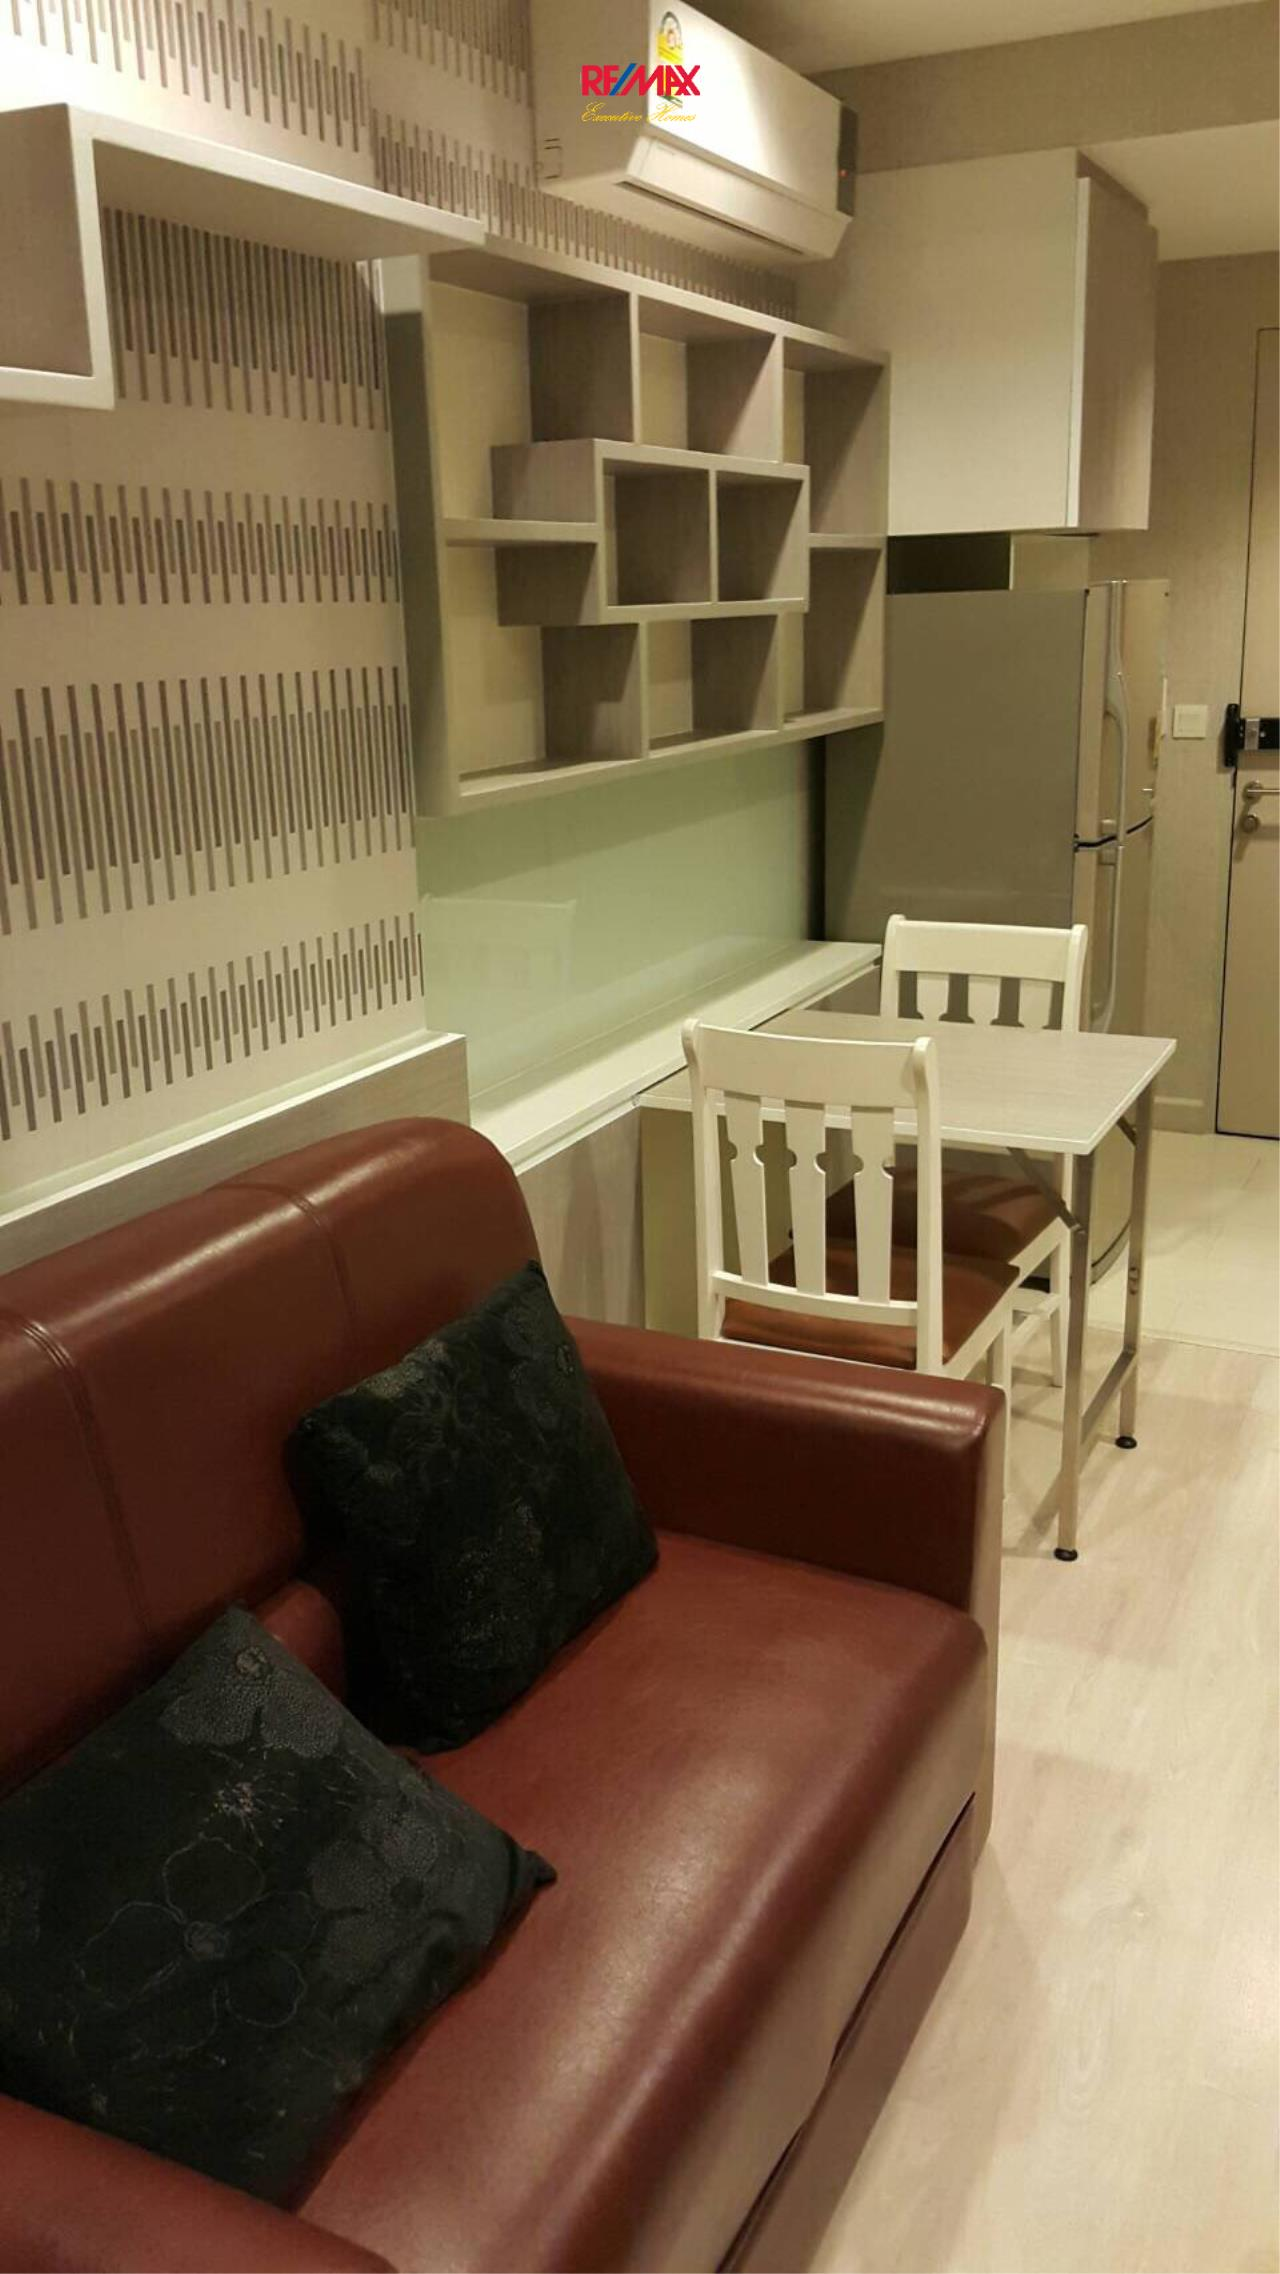 RE/MAX Executive Homes Agency's Nice 1 Bedroom for Rent Ideo Mobi Sathorn 1